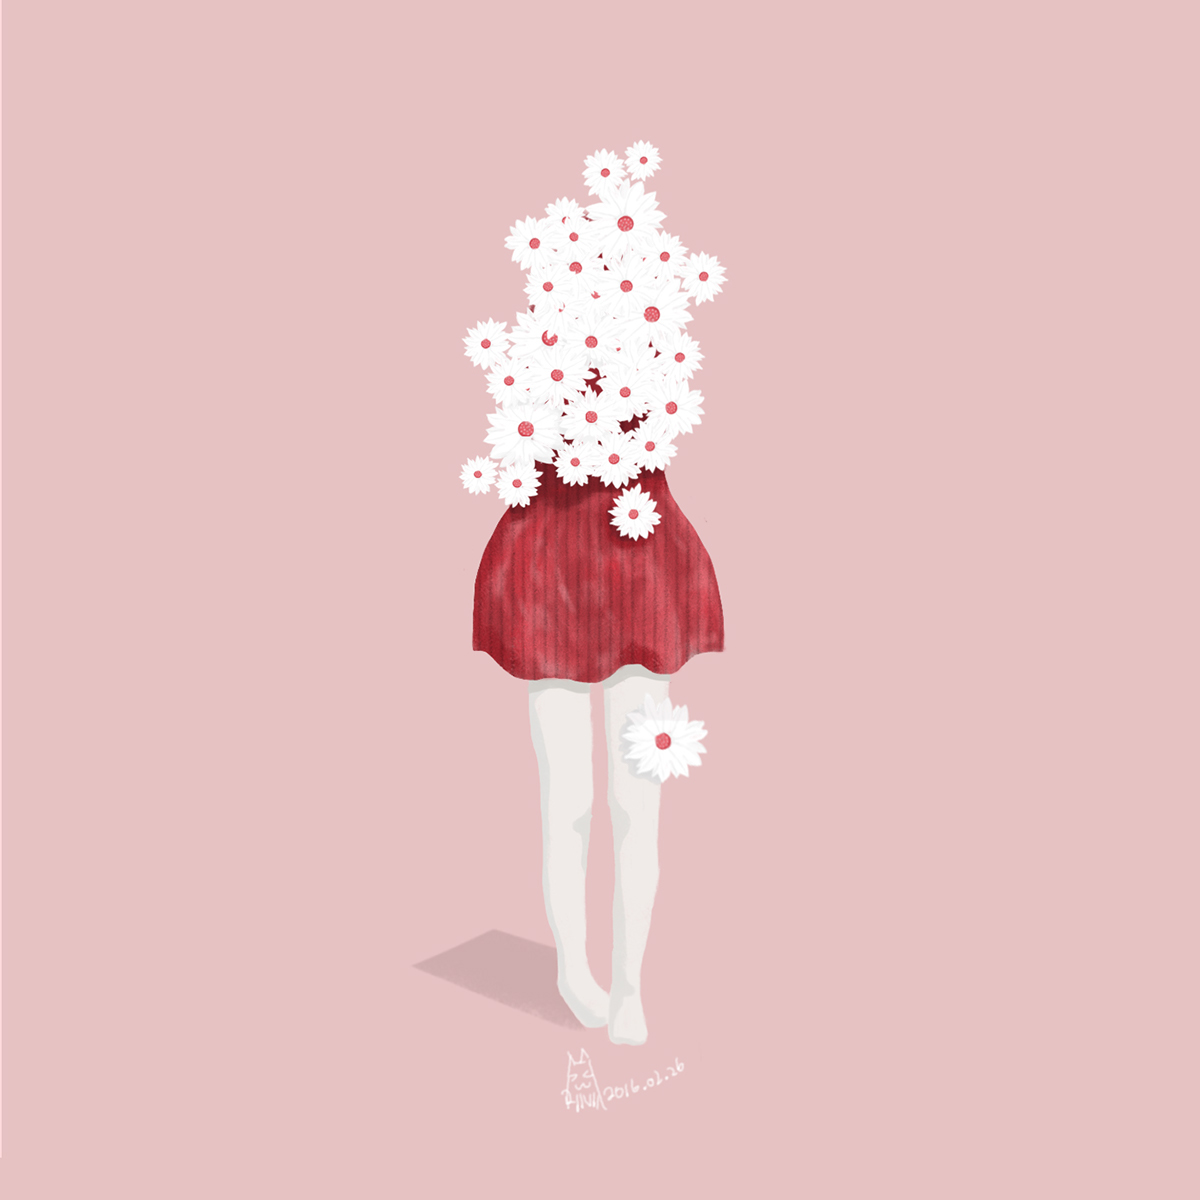 Illustration of a woman with half body covered by flowers.